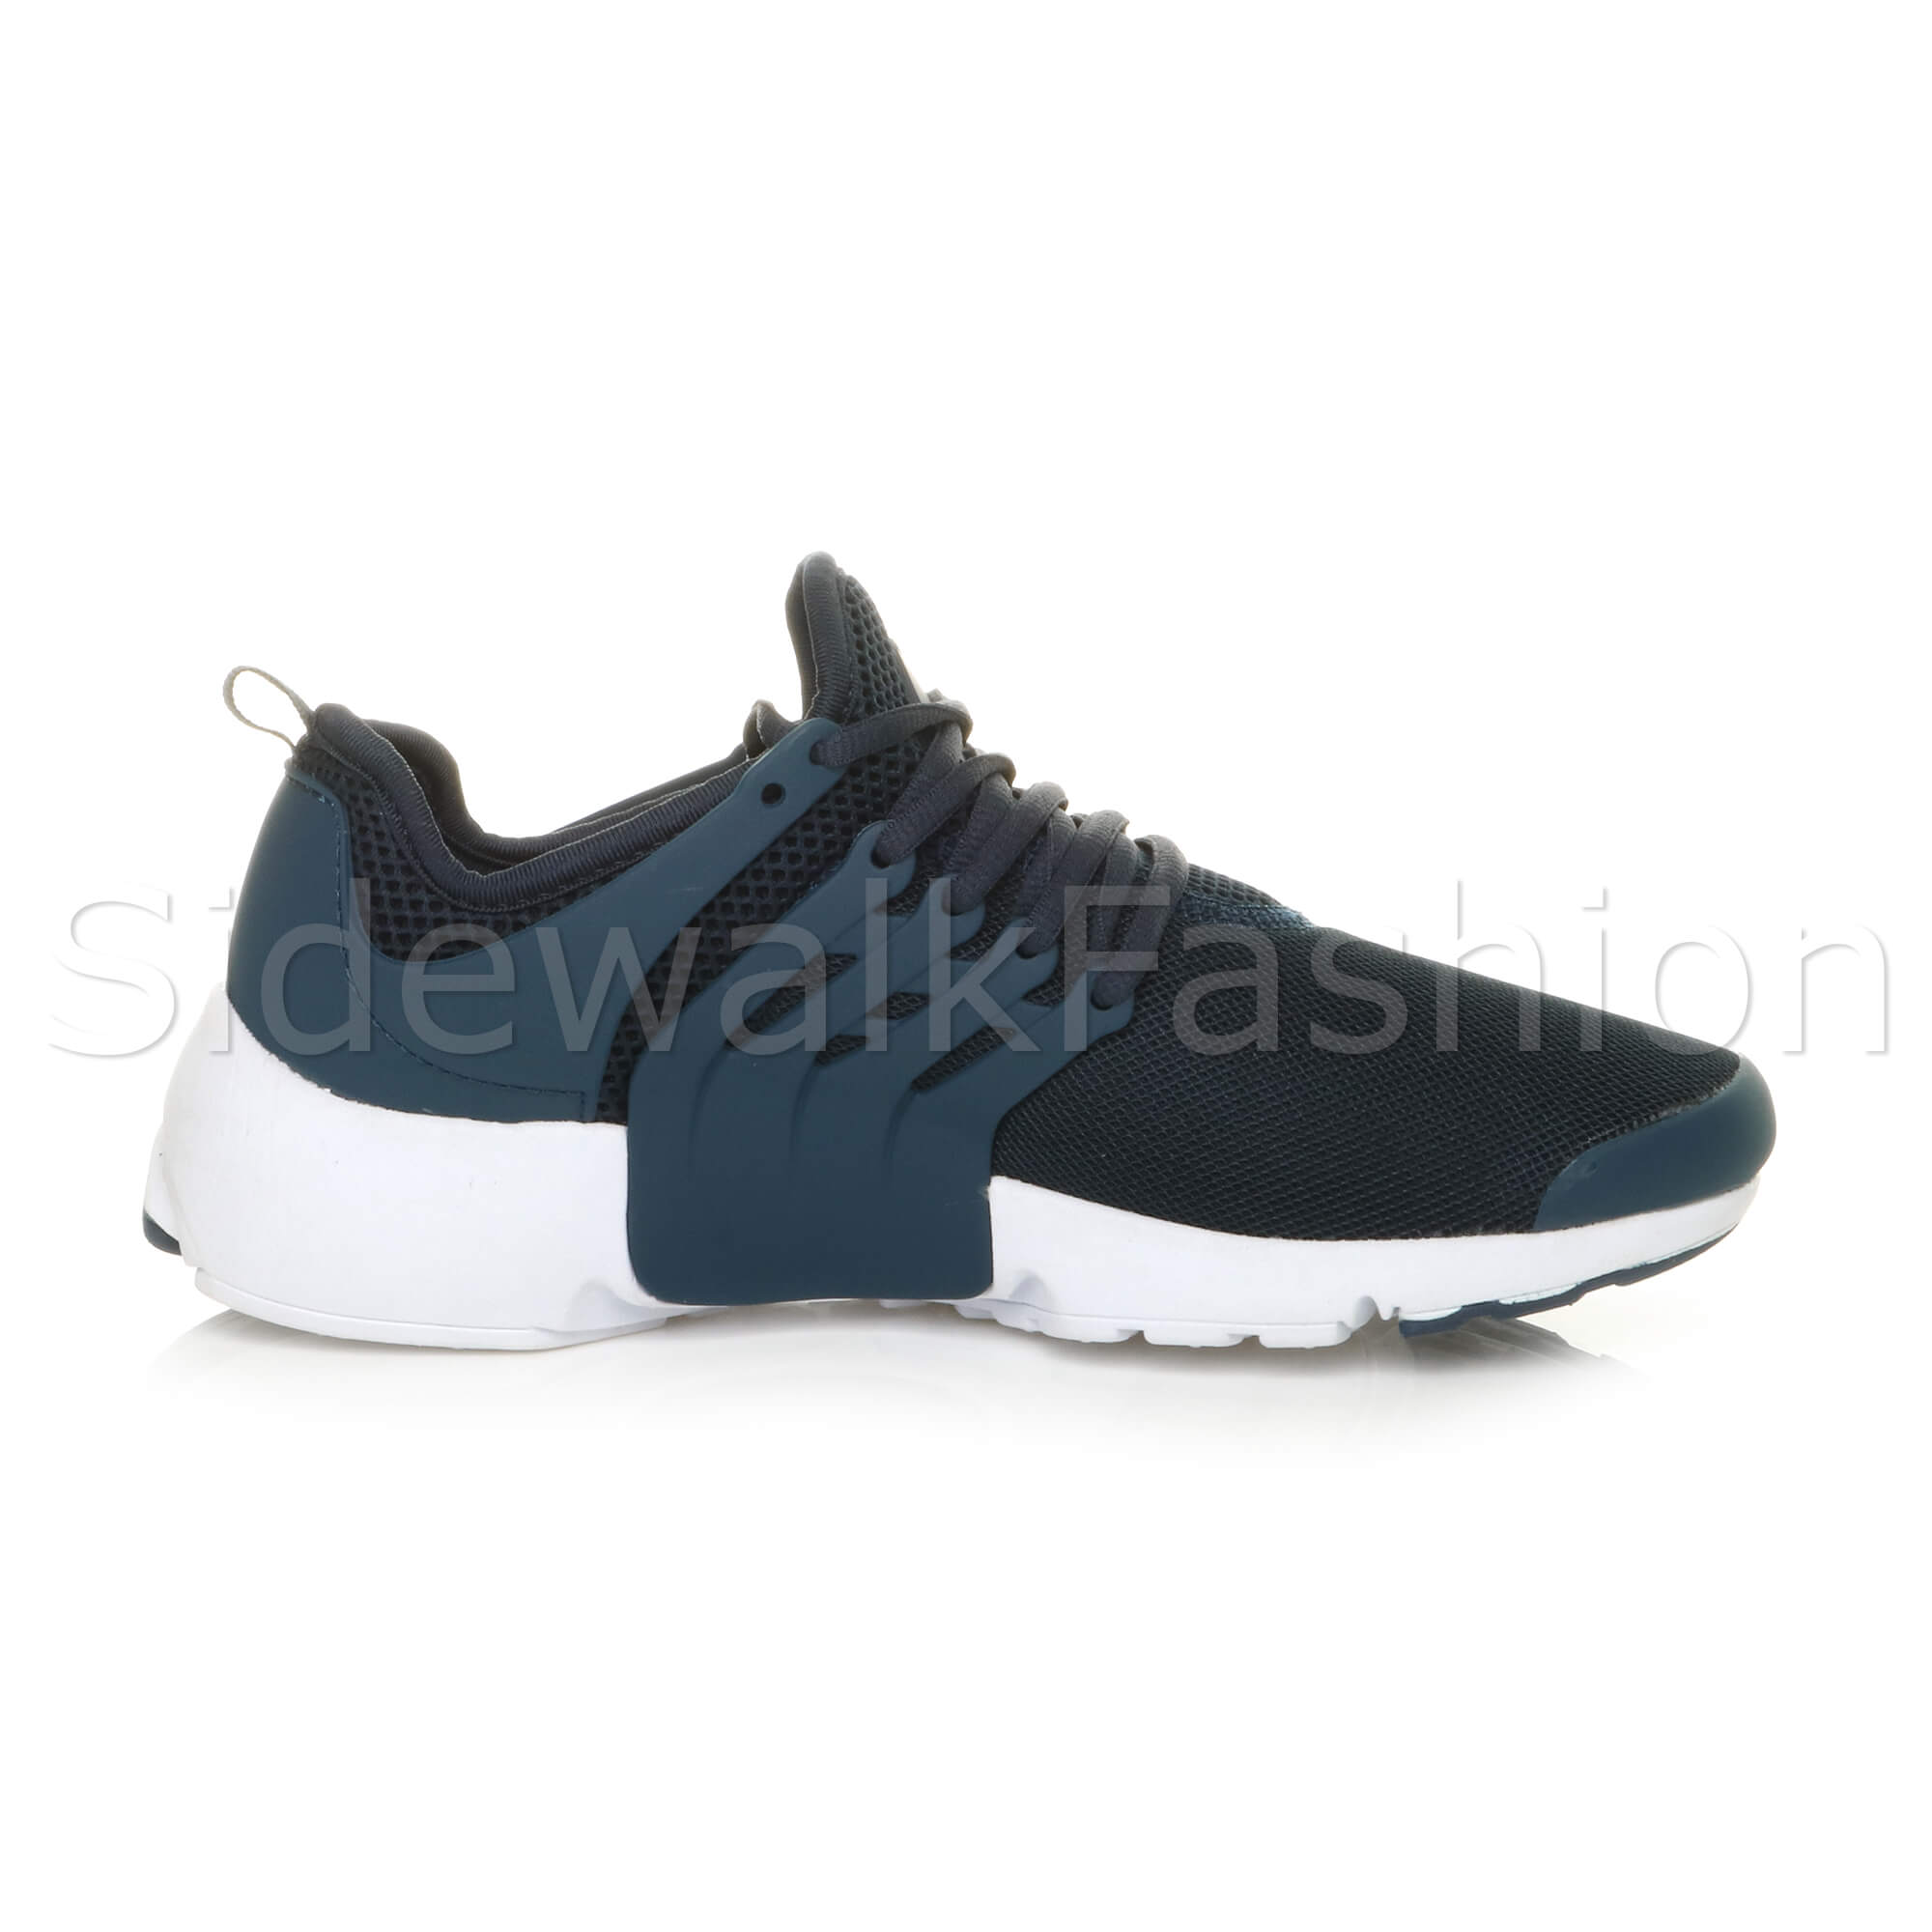 Mens-lace-up-sports-casual-low-top-gym-running-flexible-sneakers-trainers-size miniatuur 20